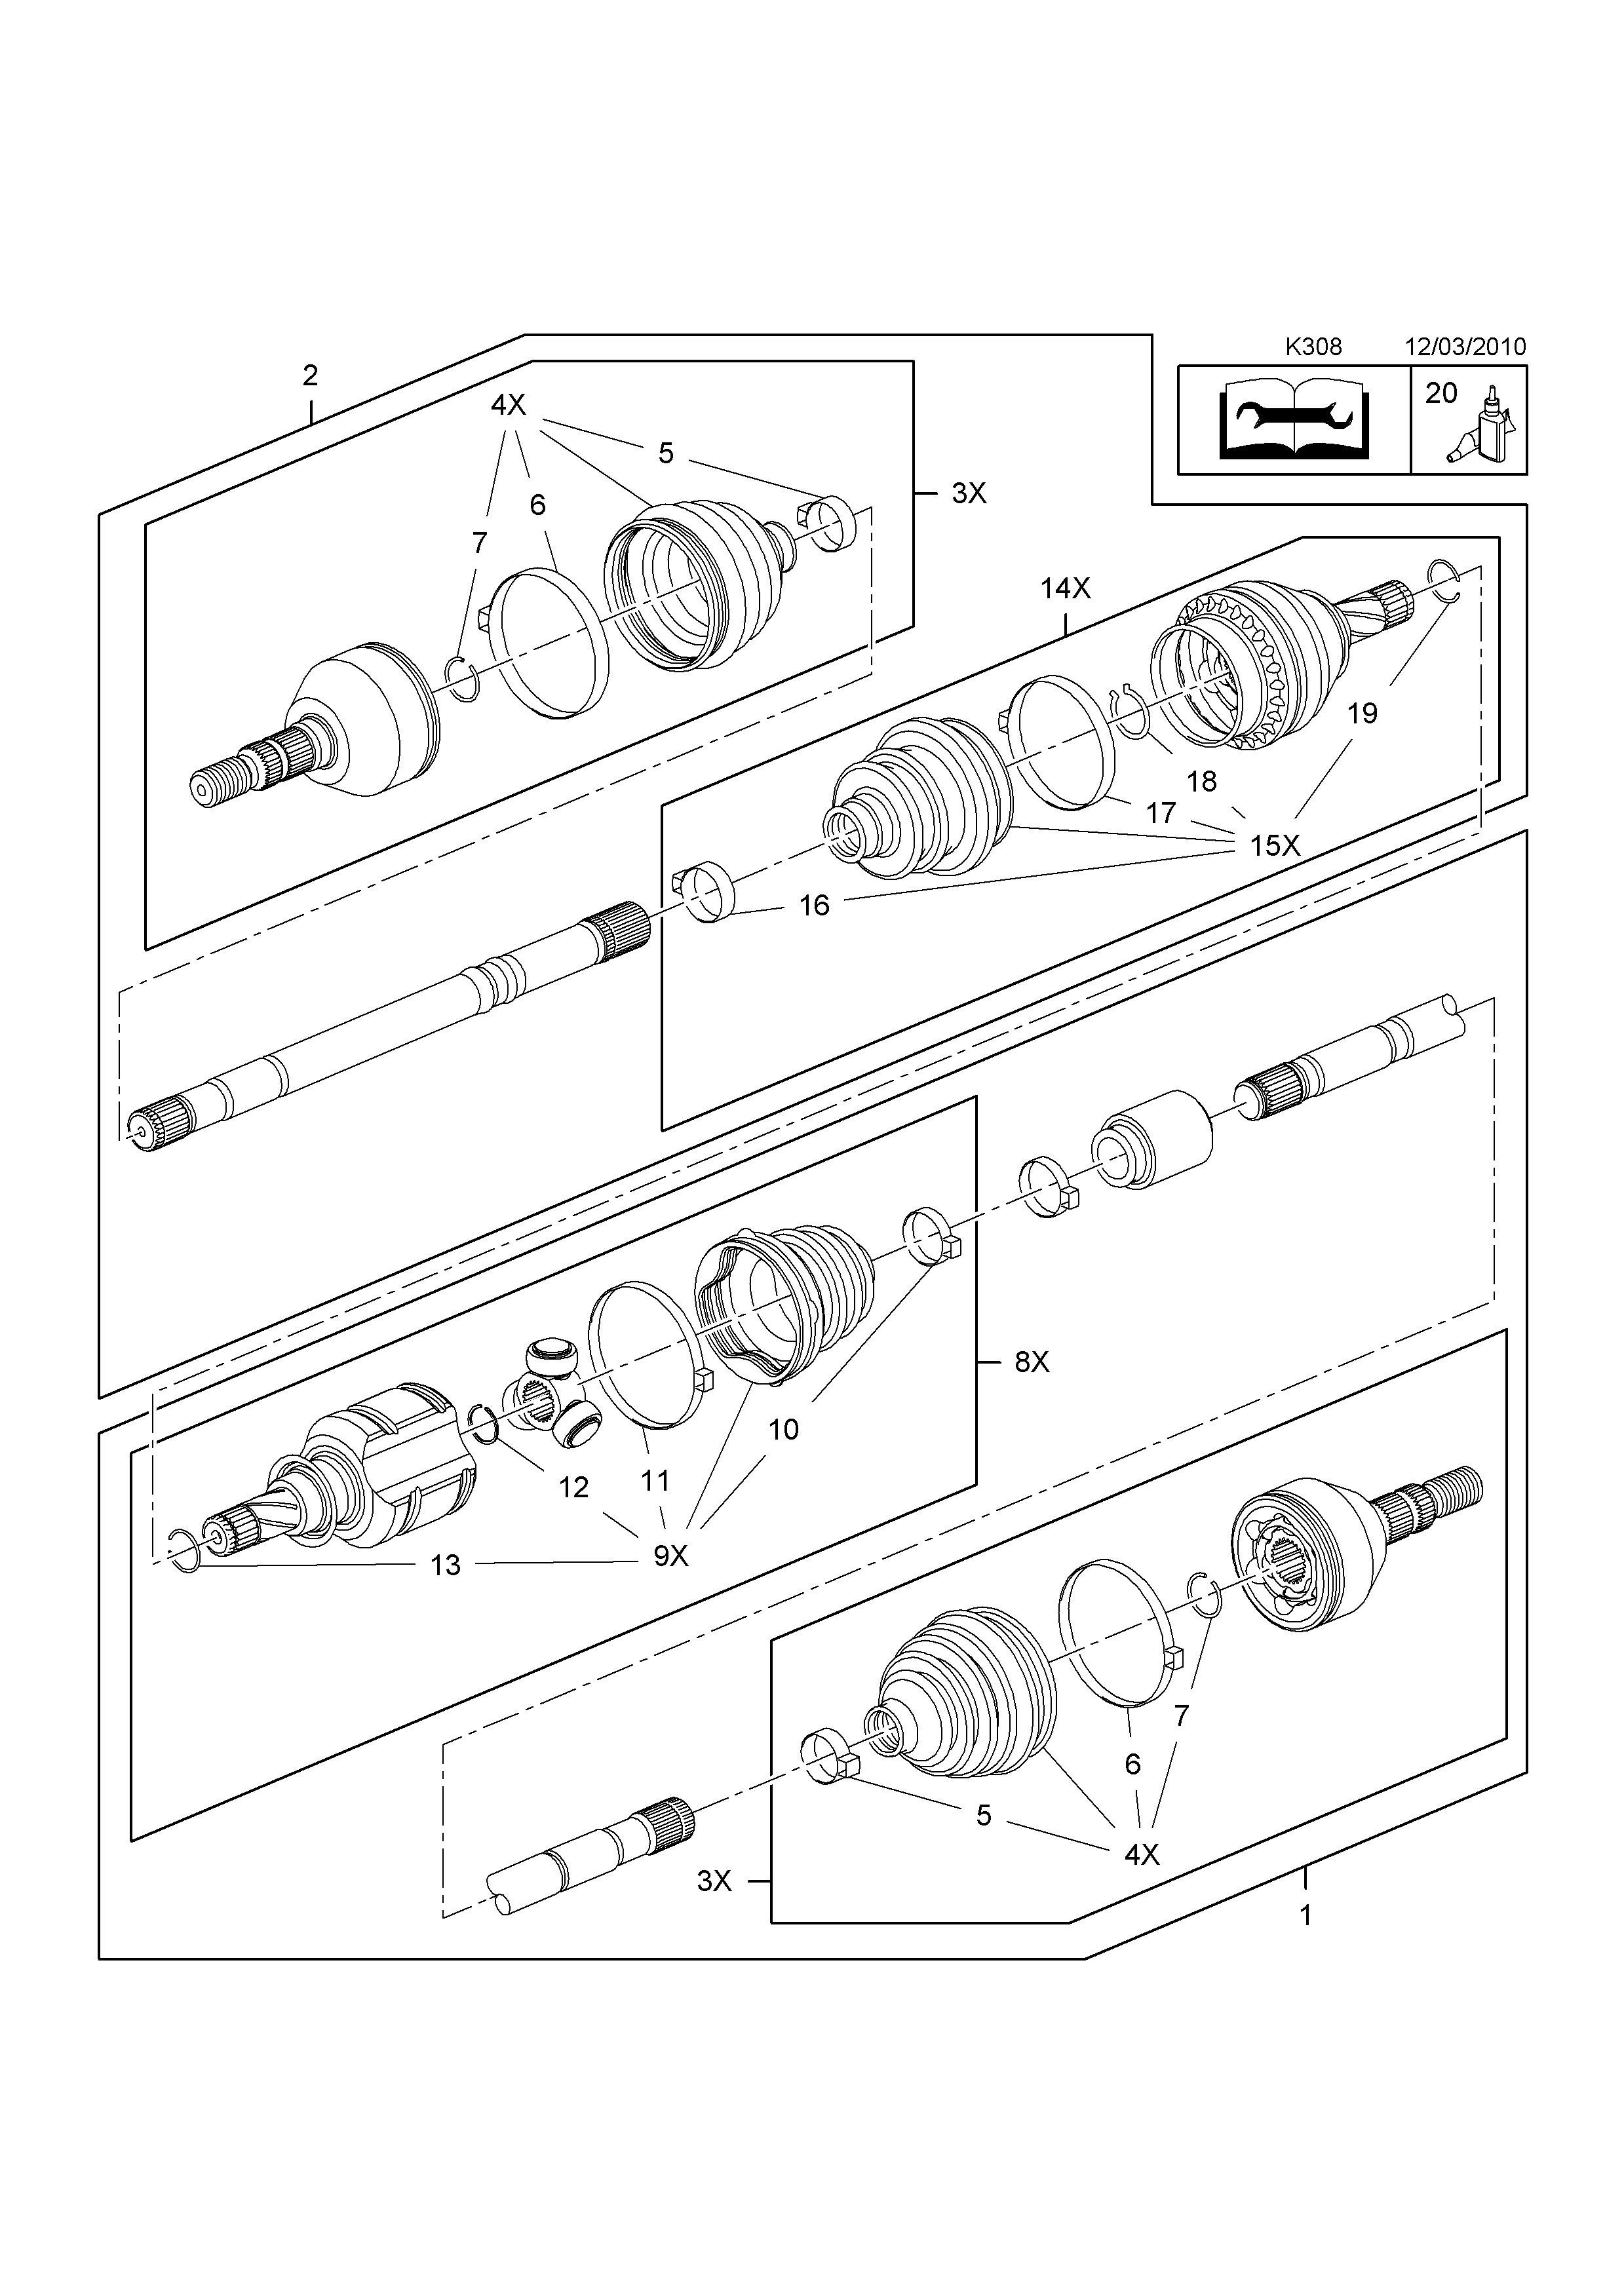 vauxhall astra fuse box layout 2010 wiring diagram 06 F250 Fuse Box Diagram opel astra fuse box diagram wiring diagram databasevauxhall astra fuse box layout 2010 wiring diagram database